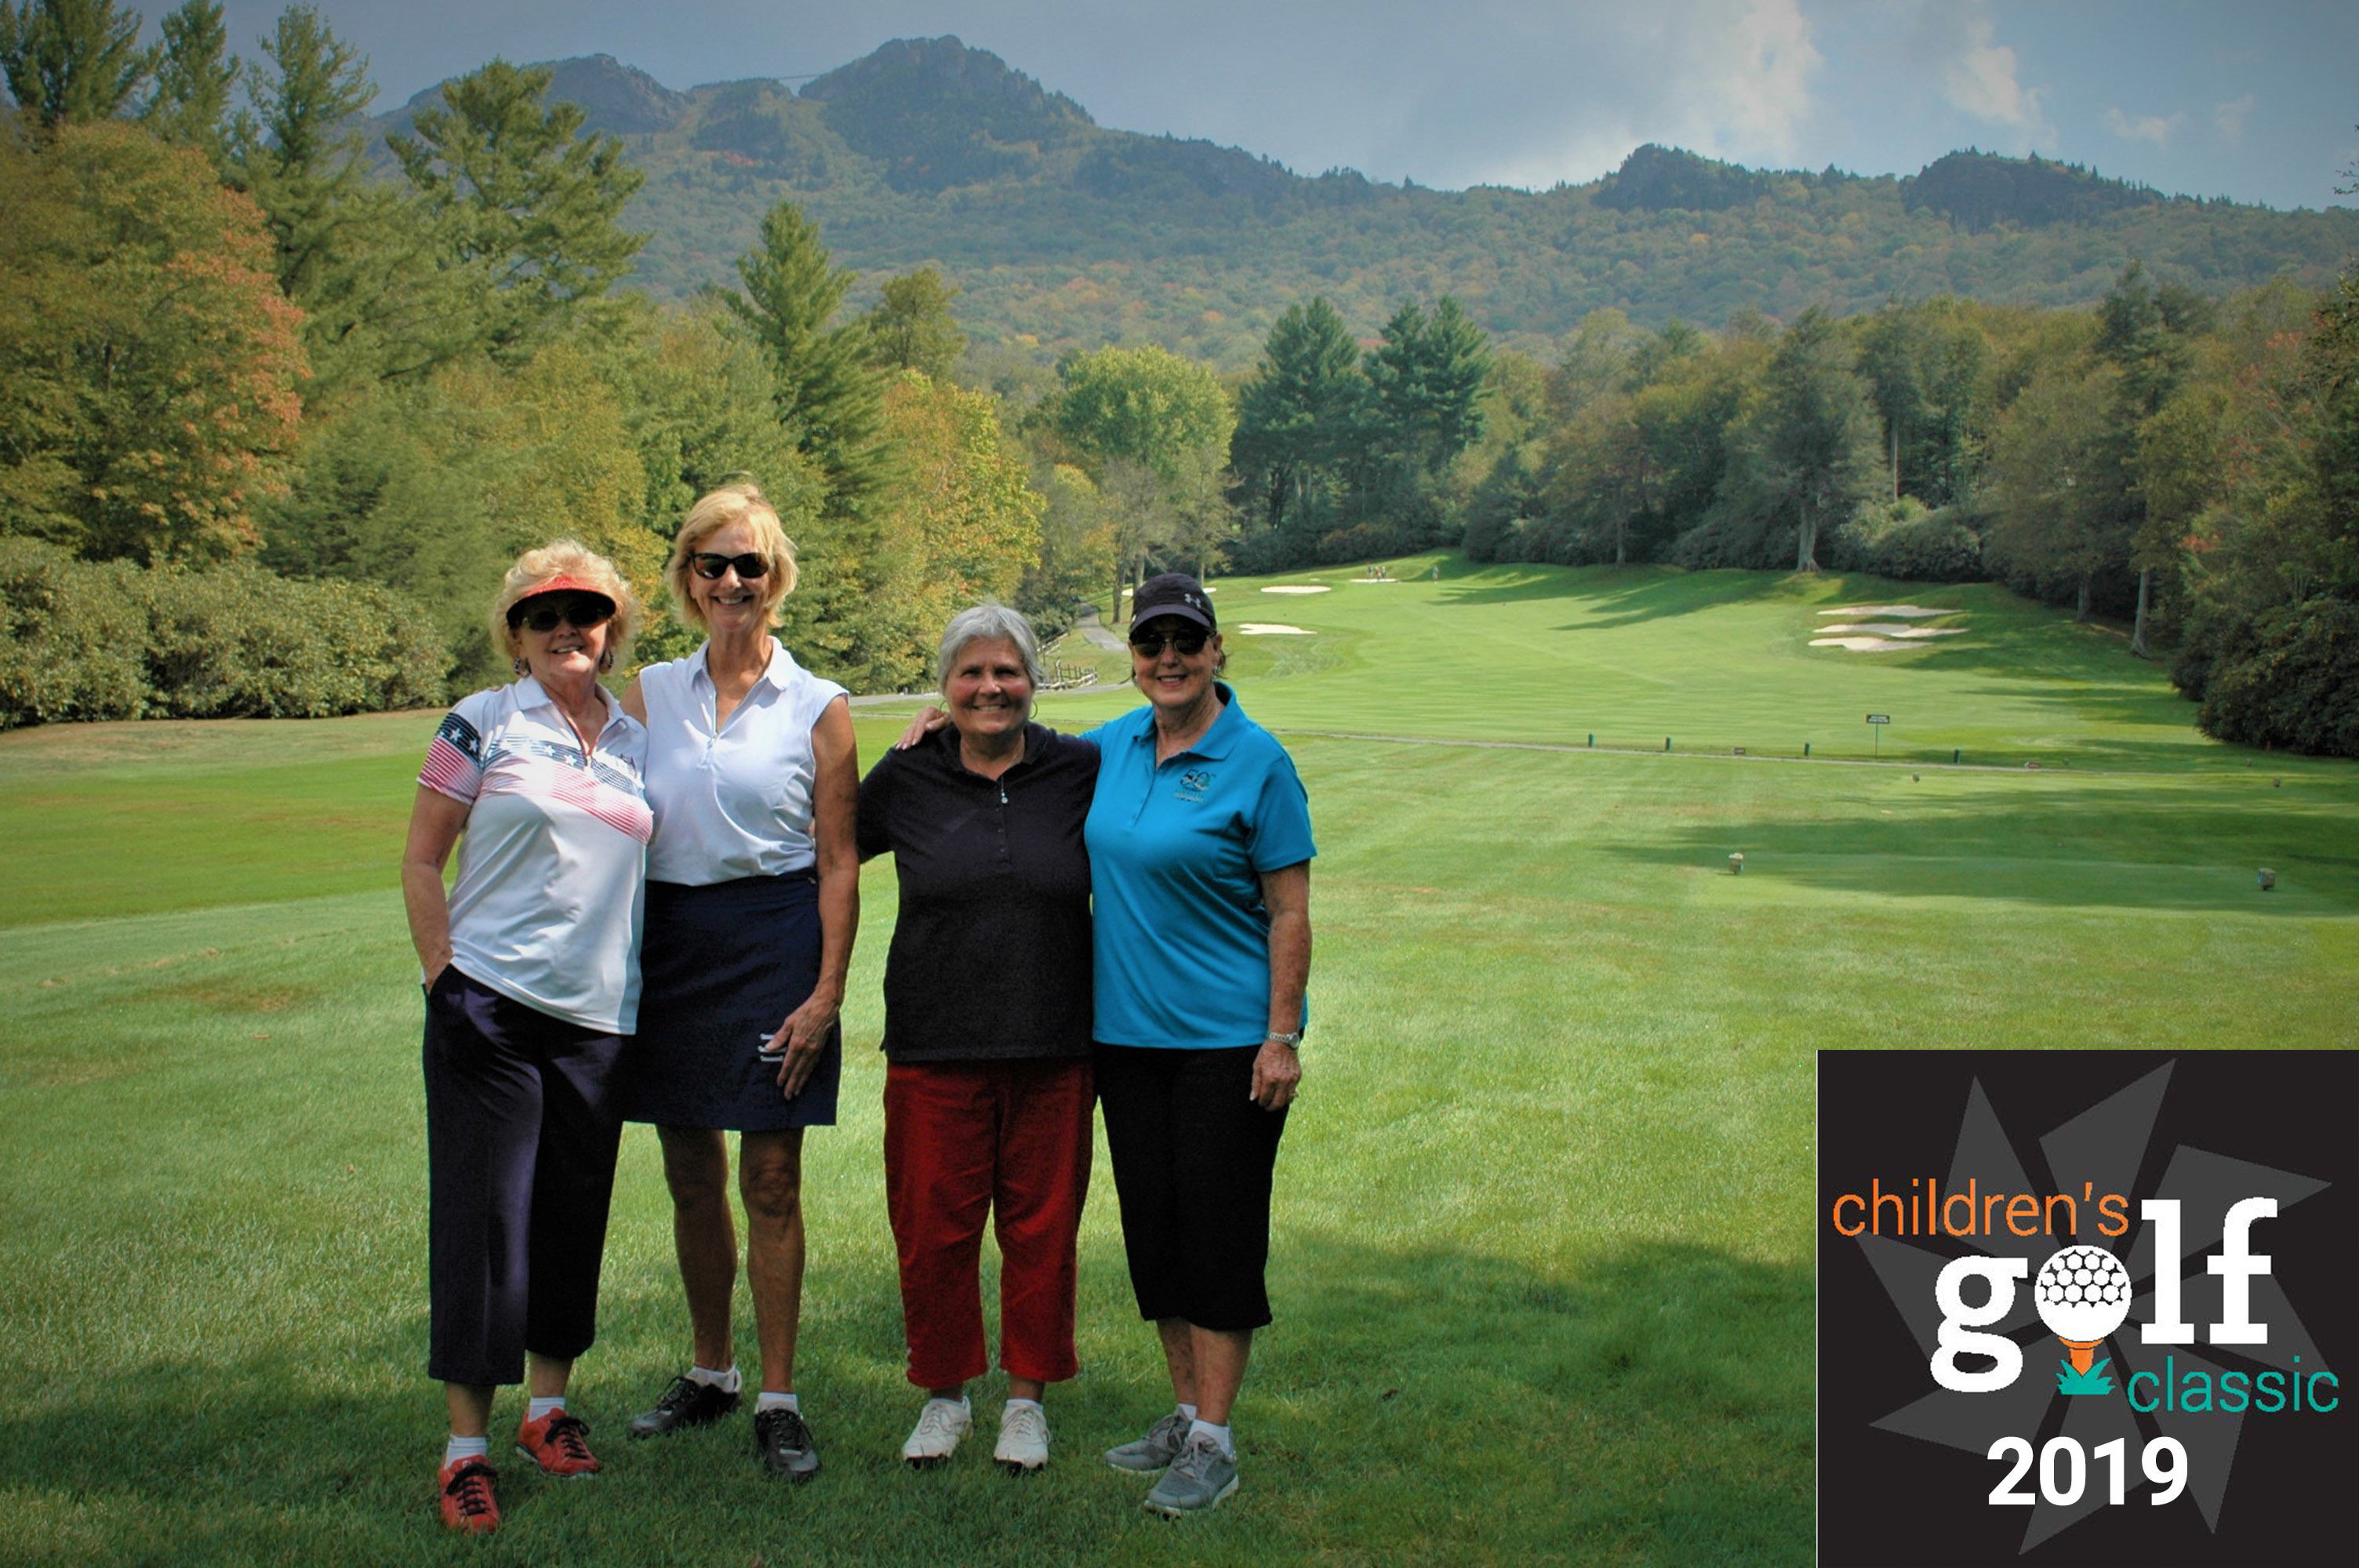 Children's Golf Classic gallery image #9